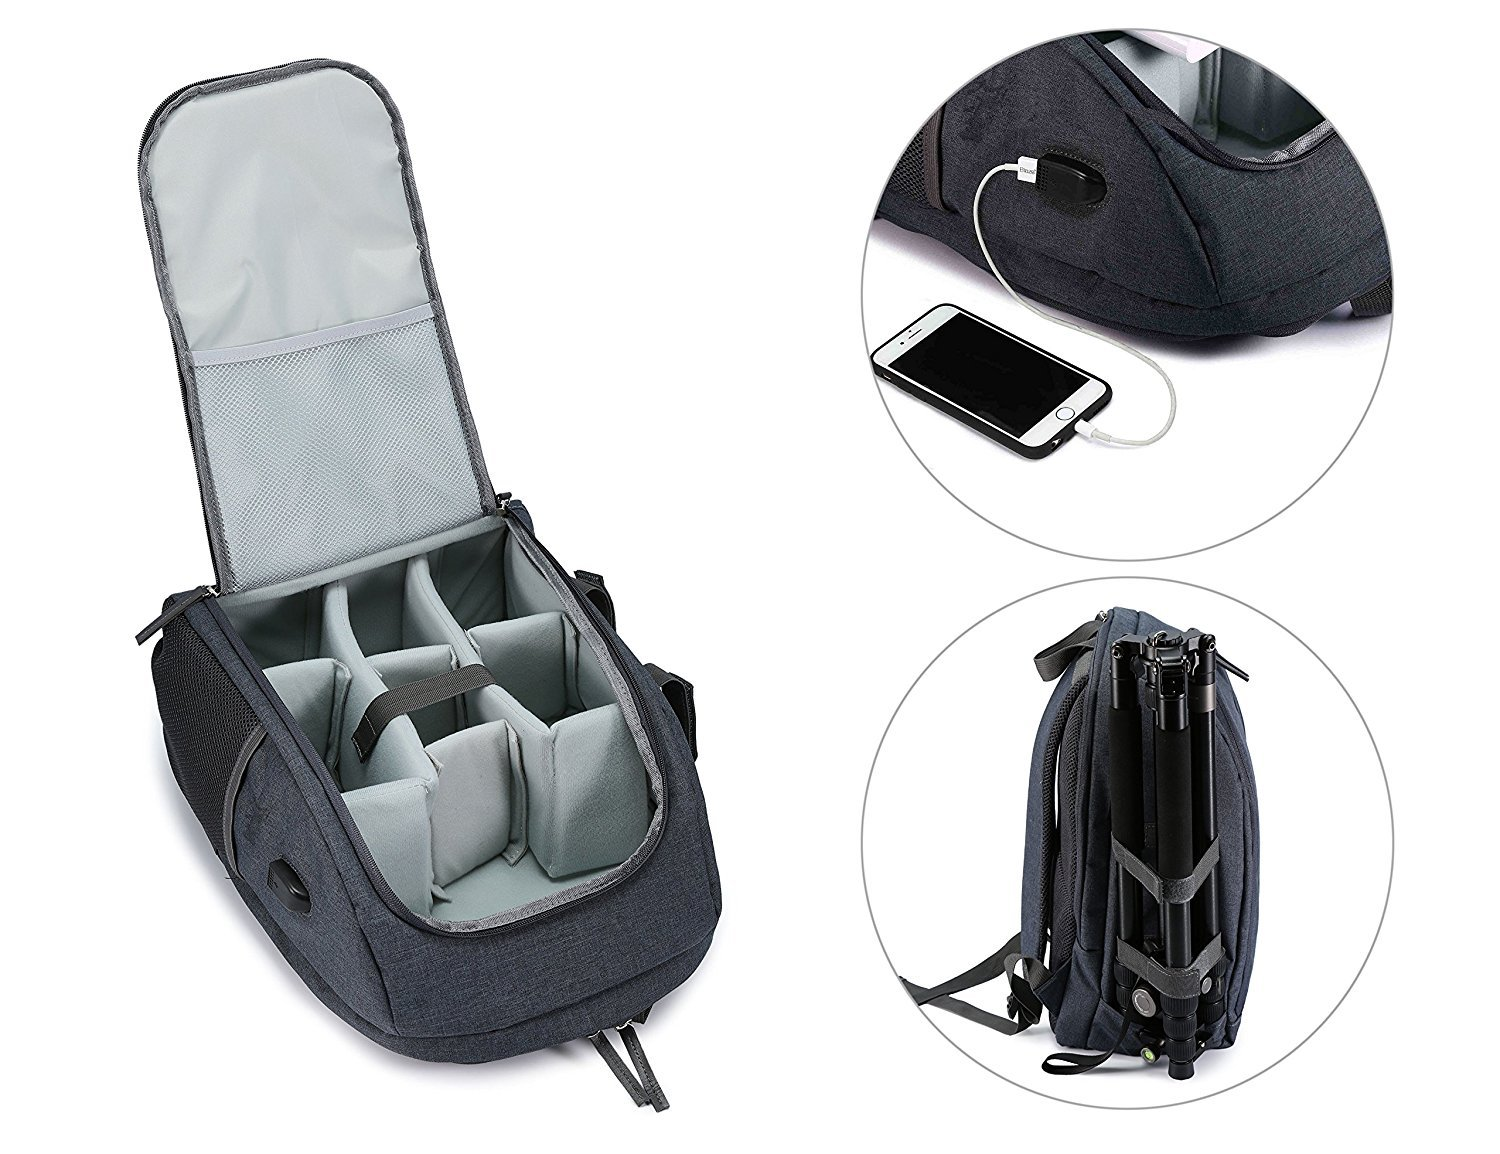 Camera Backpack Waterproof Nylon DSLR Backpack Professional Camera Bag with USB External Charging Port for Canon Nikon Sony Camera Accessories and Laptops Tablets Black (Gray) by Cozyvie (Image #7)